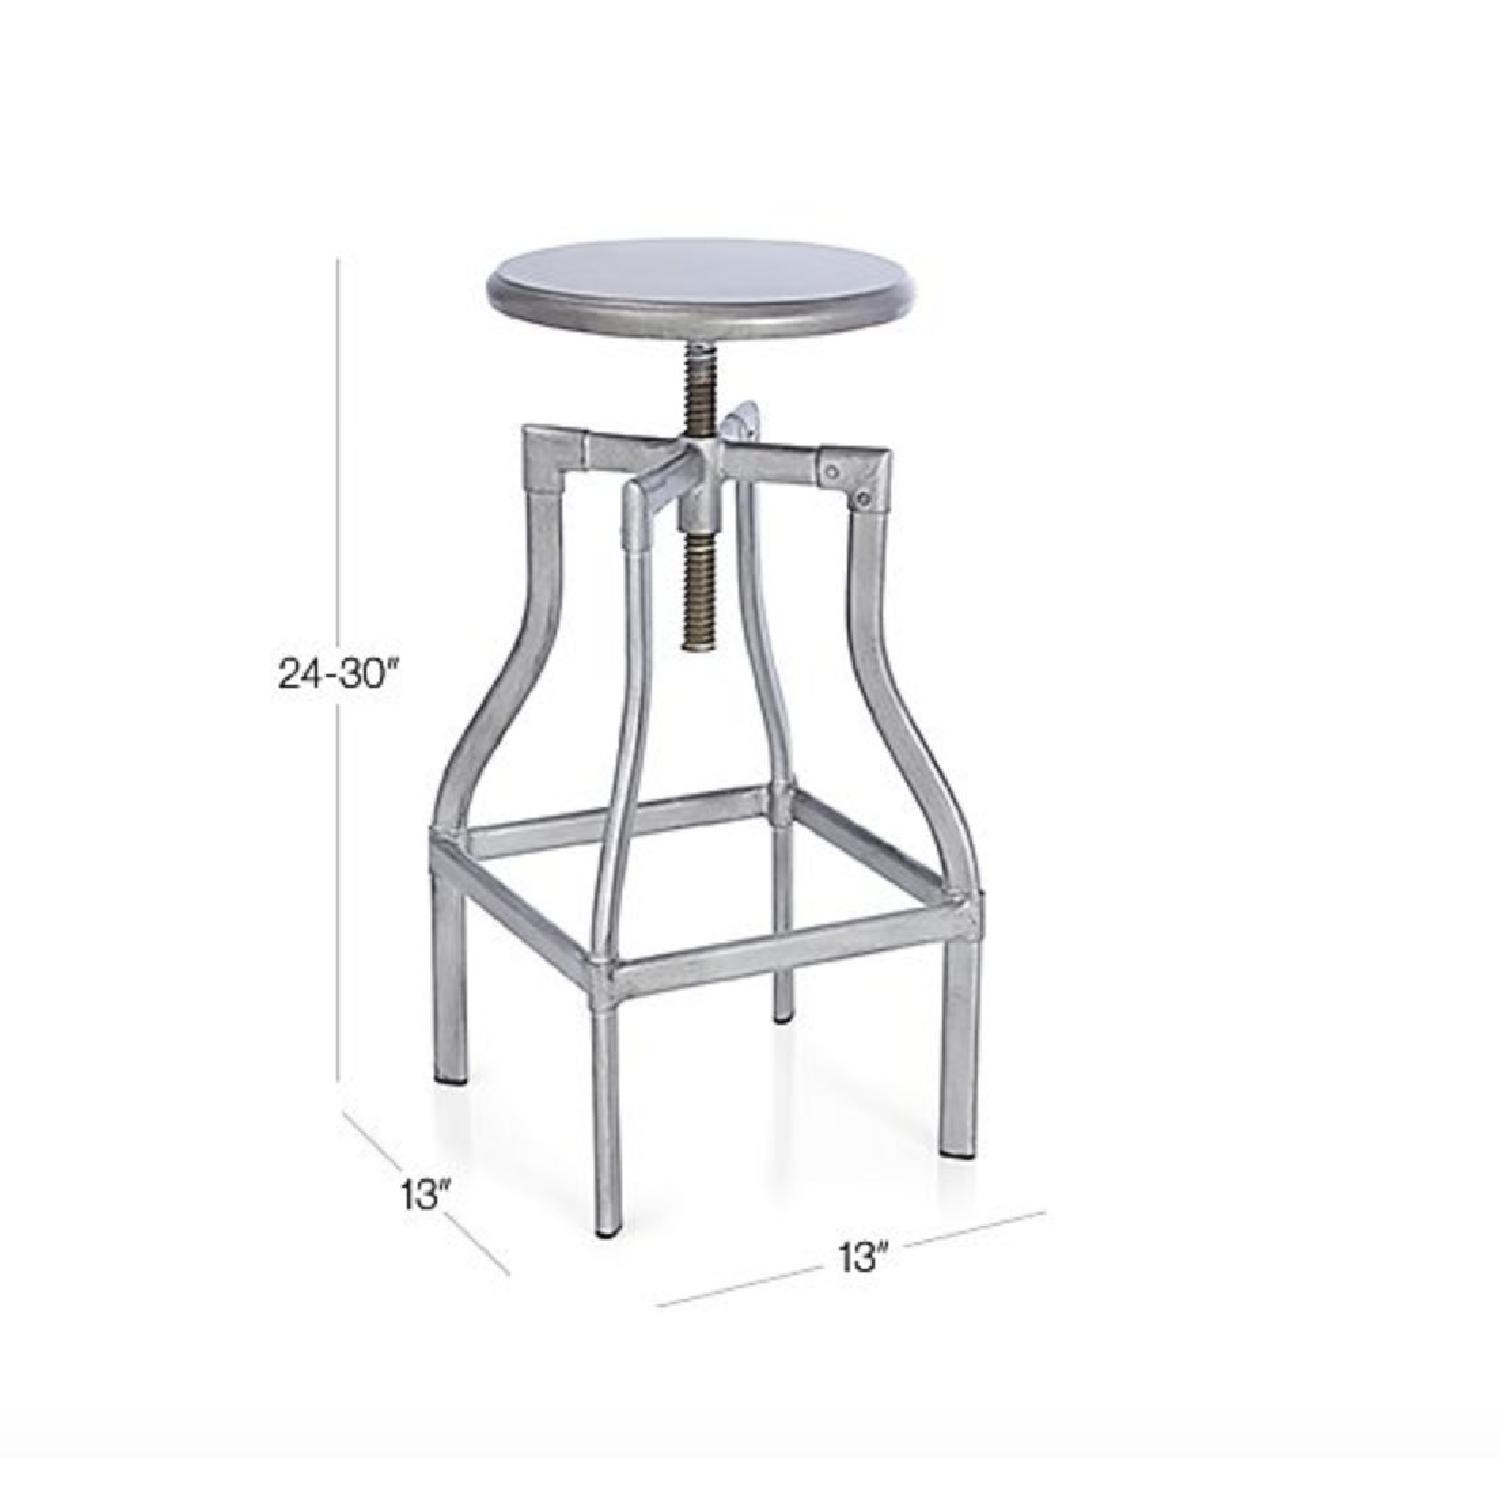 Crate & Barrel Turner Gunmetal Adjustable Backless Barstools